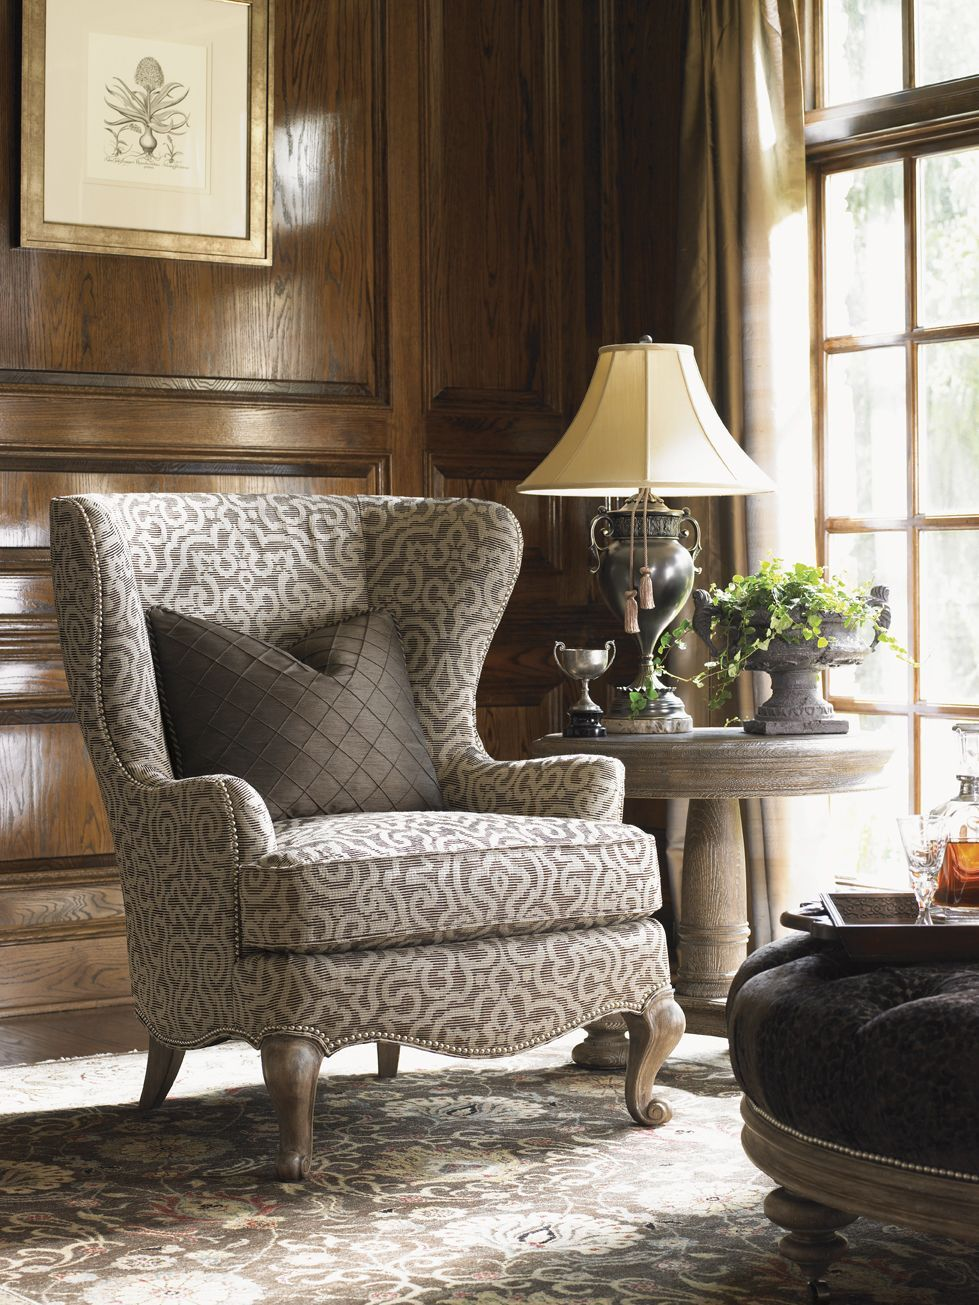 Traditional - Living Room - Images by Wayfair  Wayfair